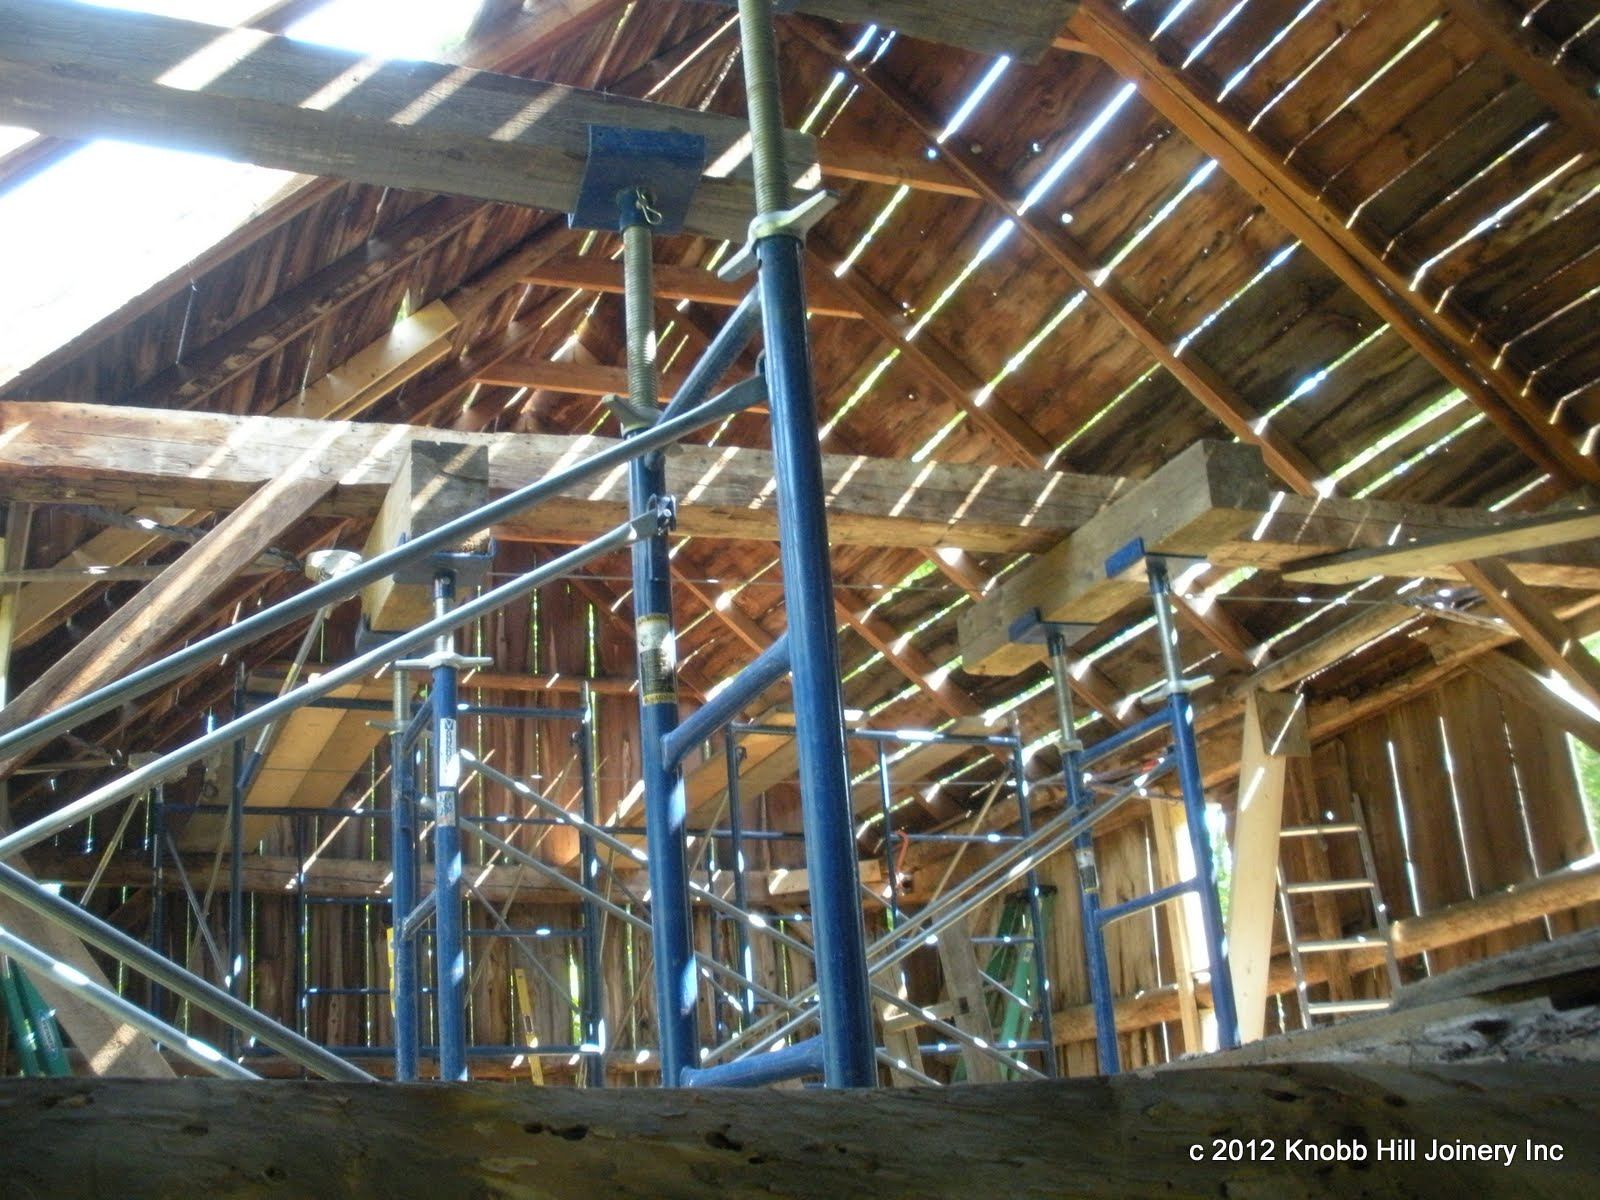 A lot of support to the damaged frame was required before dismantling and restoration could begin.